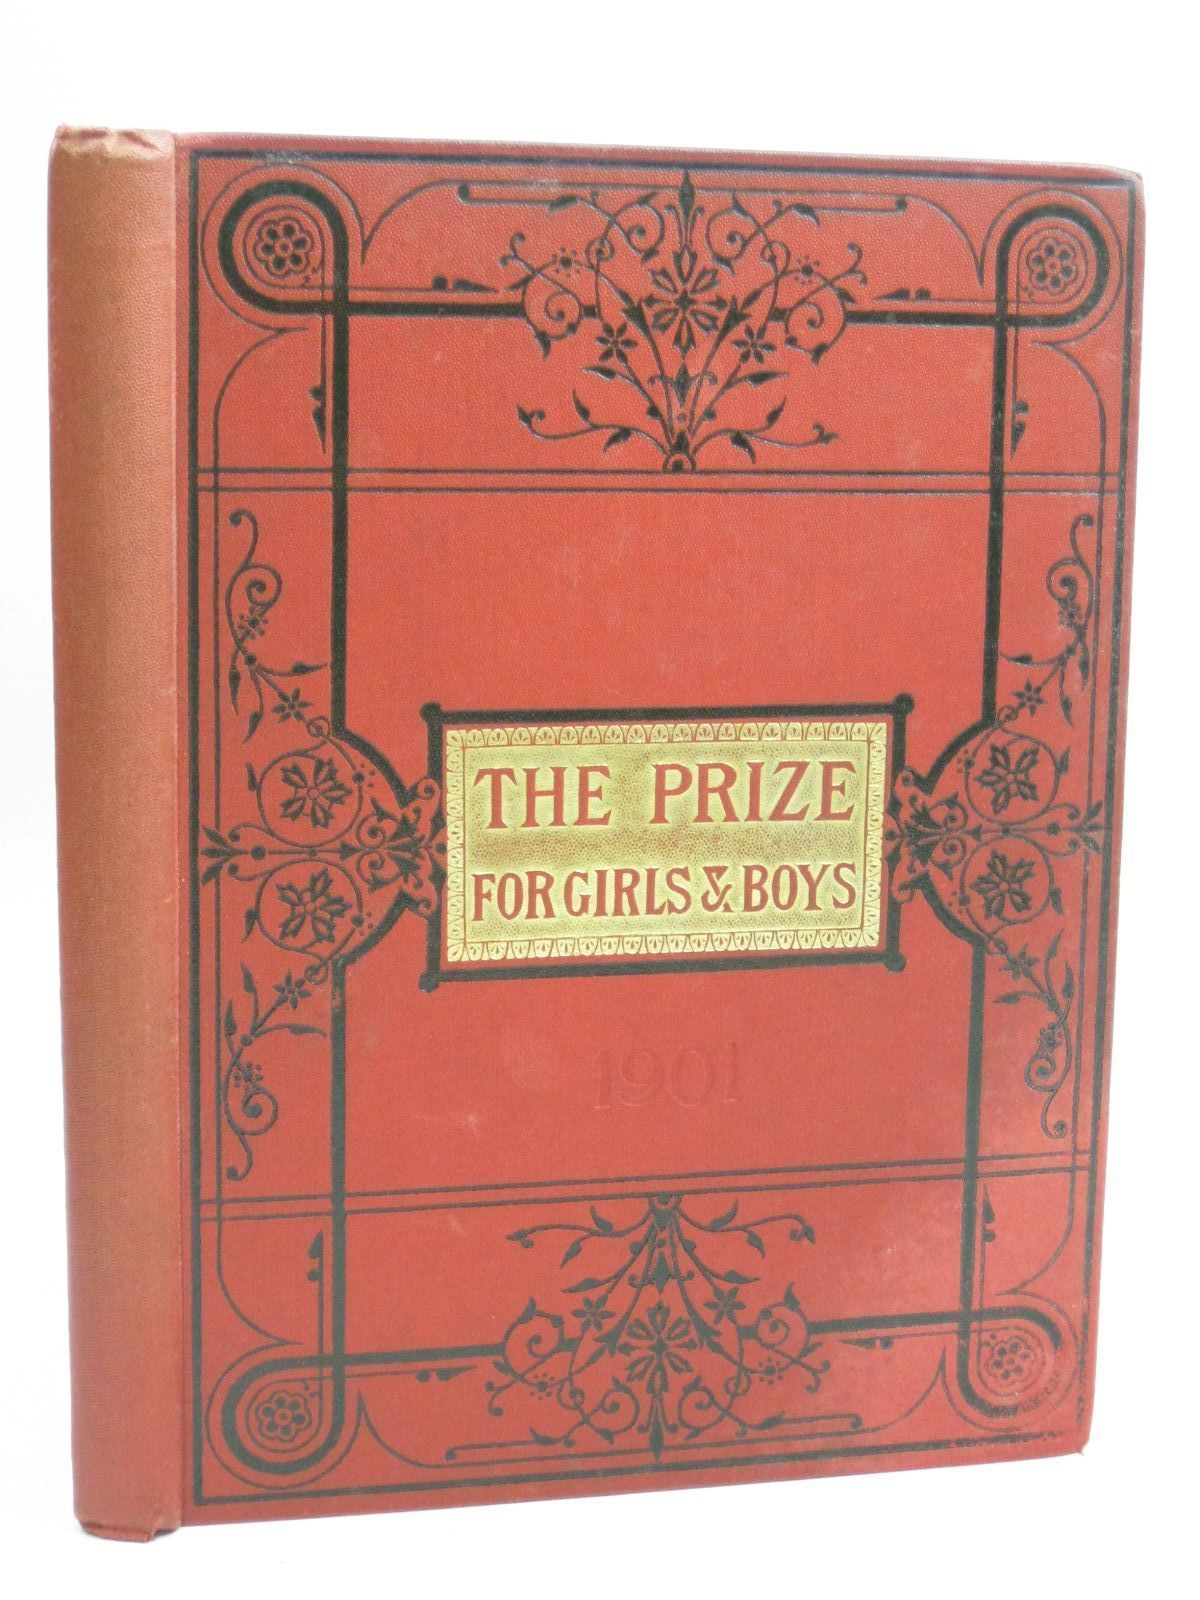 Photo of THE PRIZE FOR GIRLS AND BOYS 1901 published by Wells Gardner, Darton & Co. (STOCK CODE: 1506106)  for sale by Stella & Rose's Books